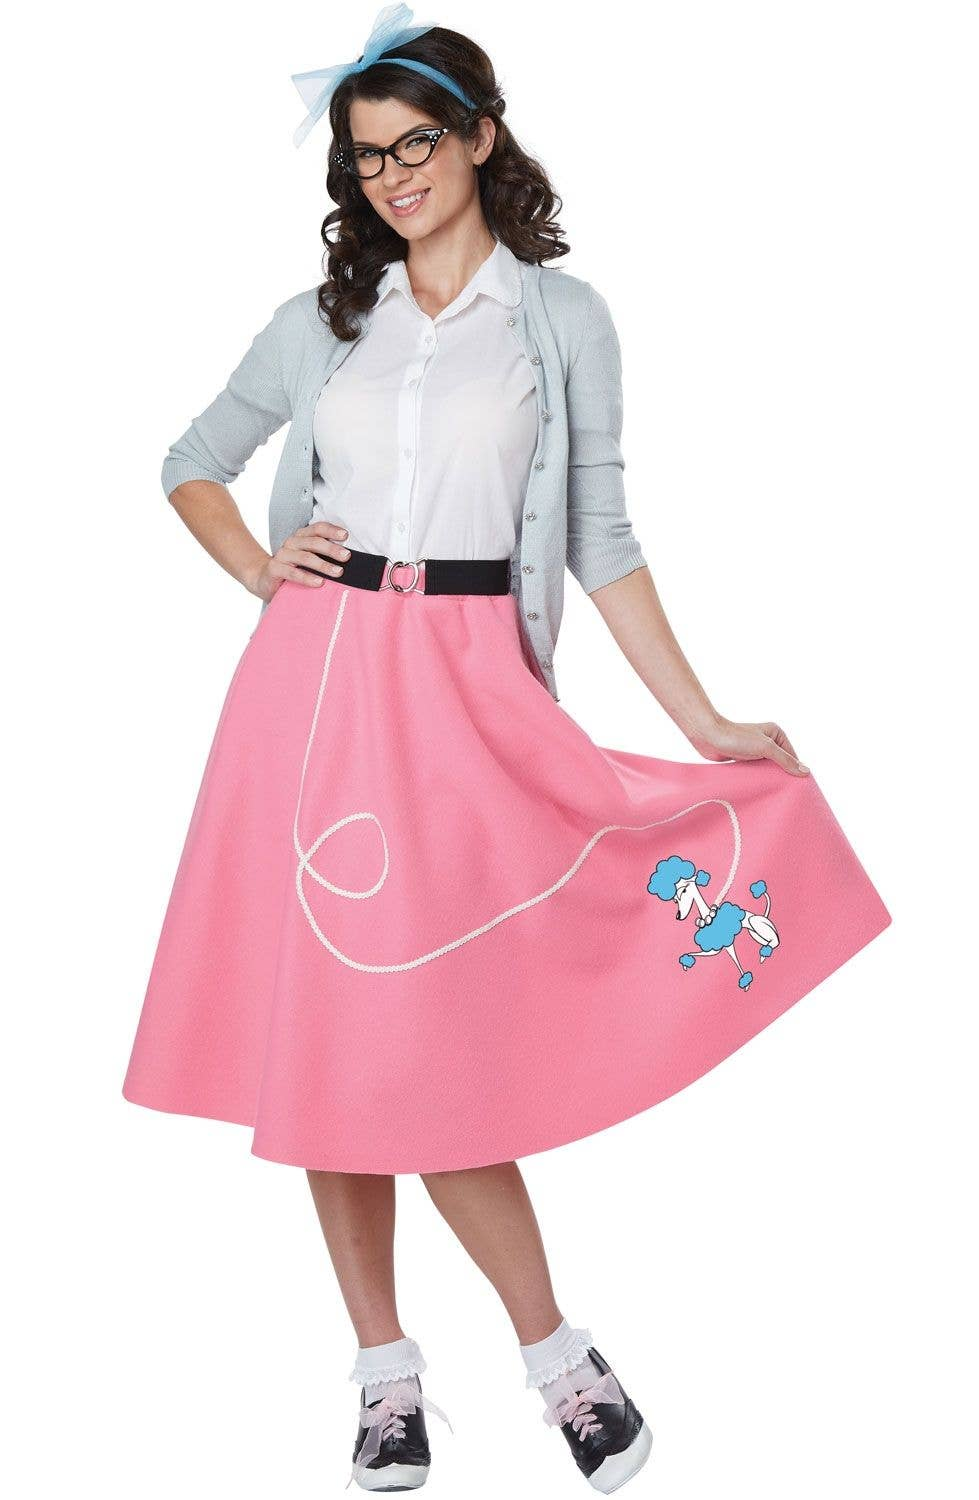 baf7a85241 Pink and White 50s Rockabilly Women s Costume Second Image